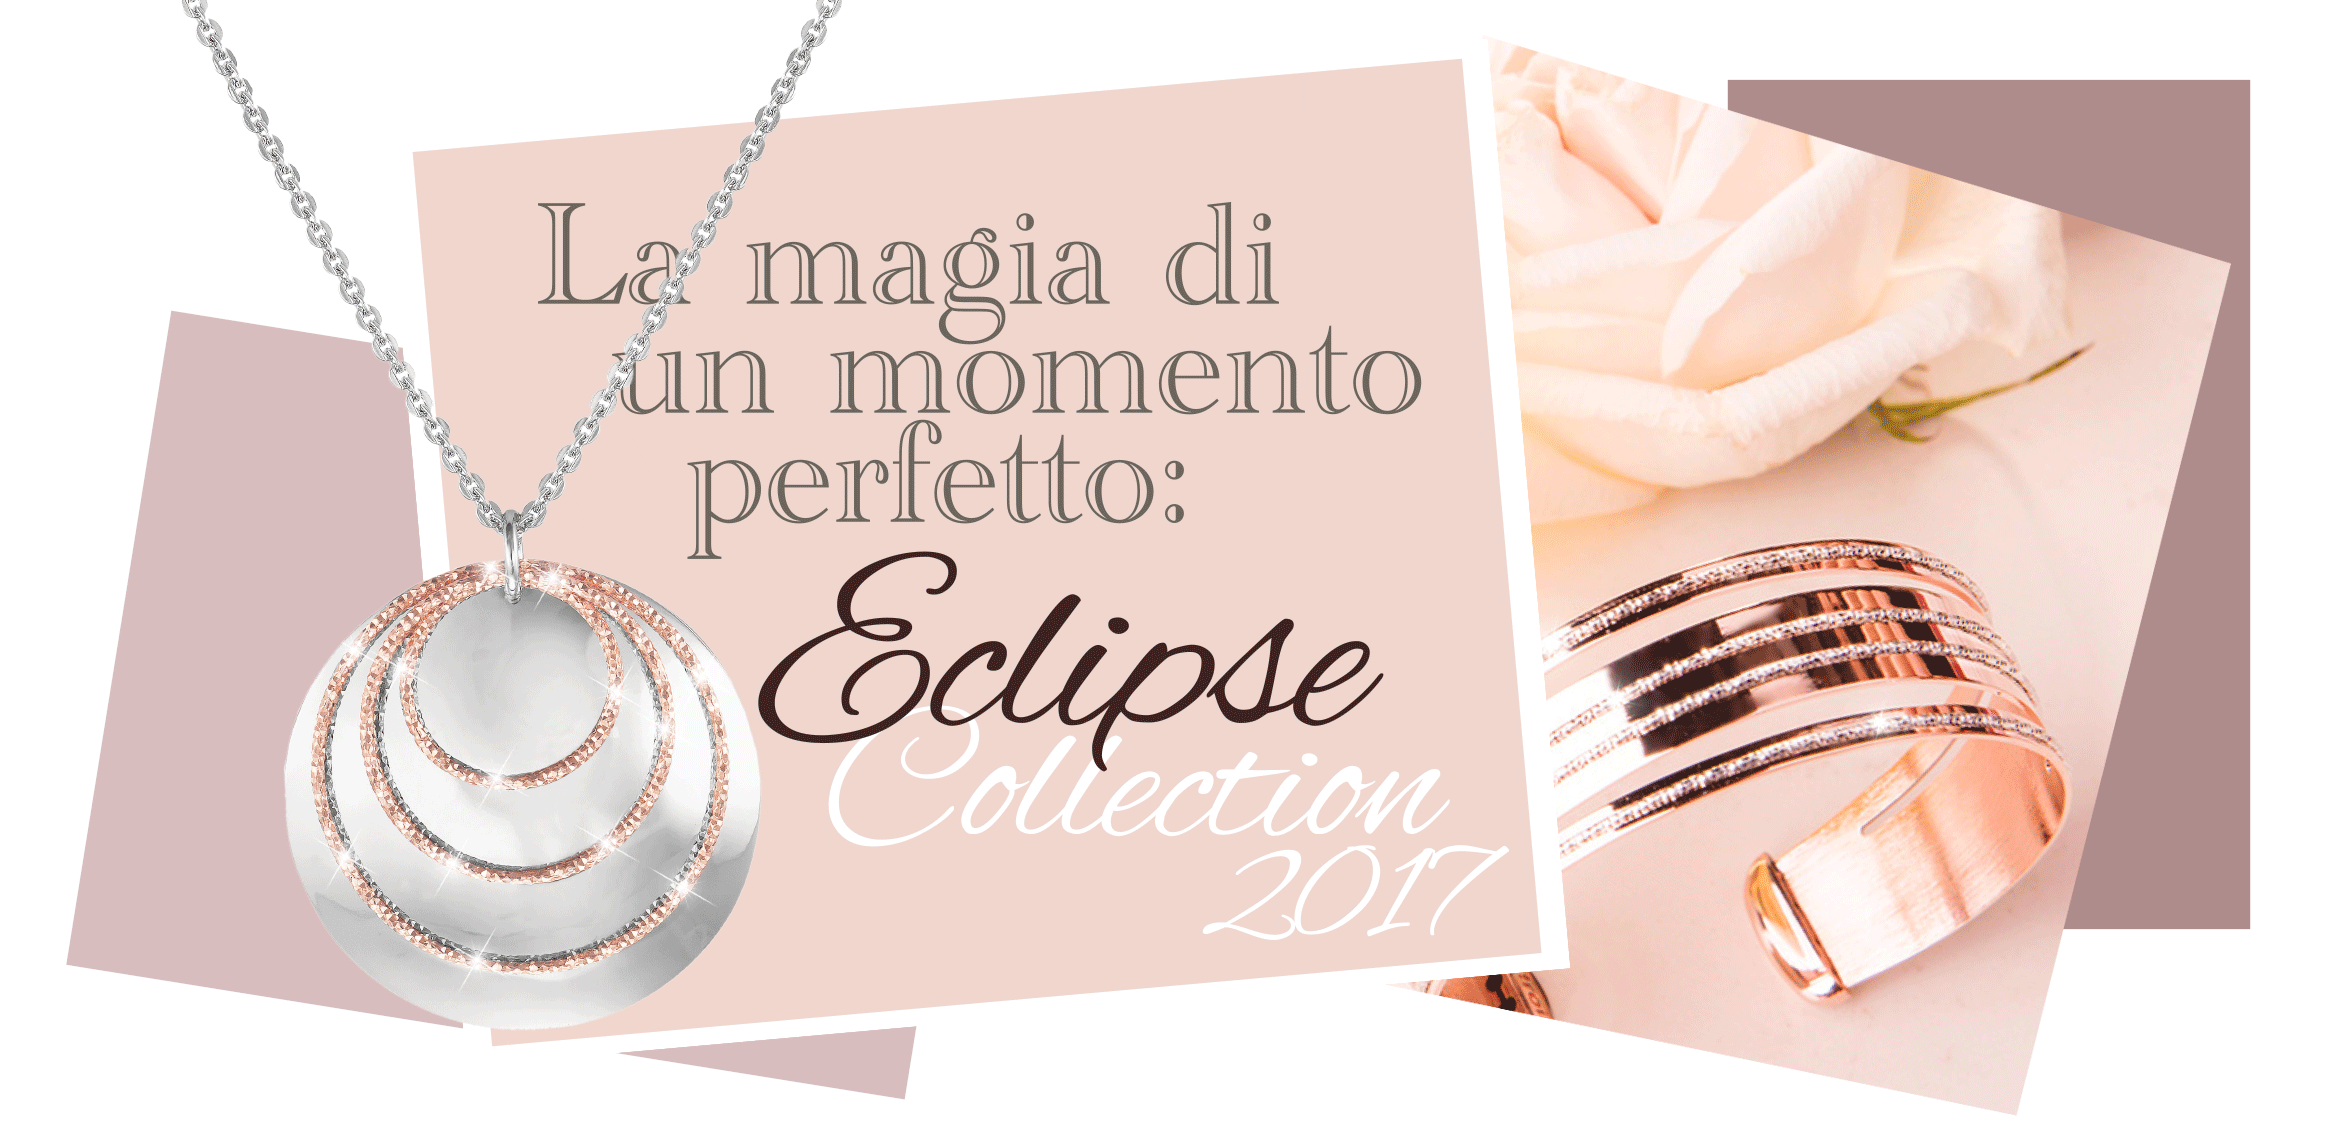 La magia di un momento perfetto: ECLIPSE COLLECTION 2017